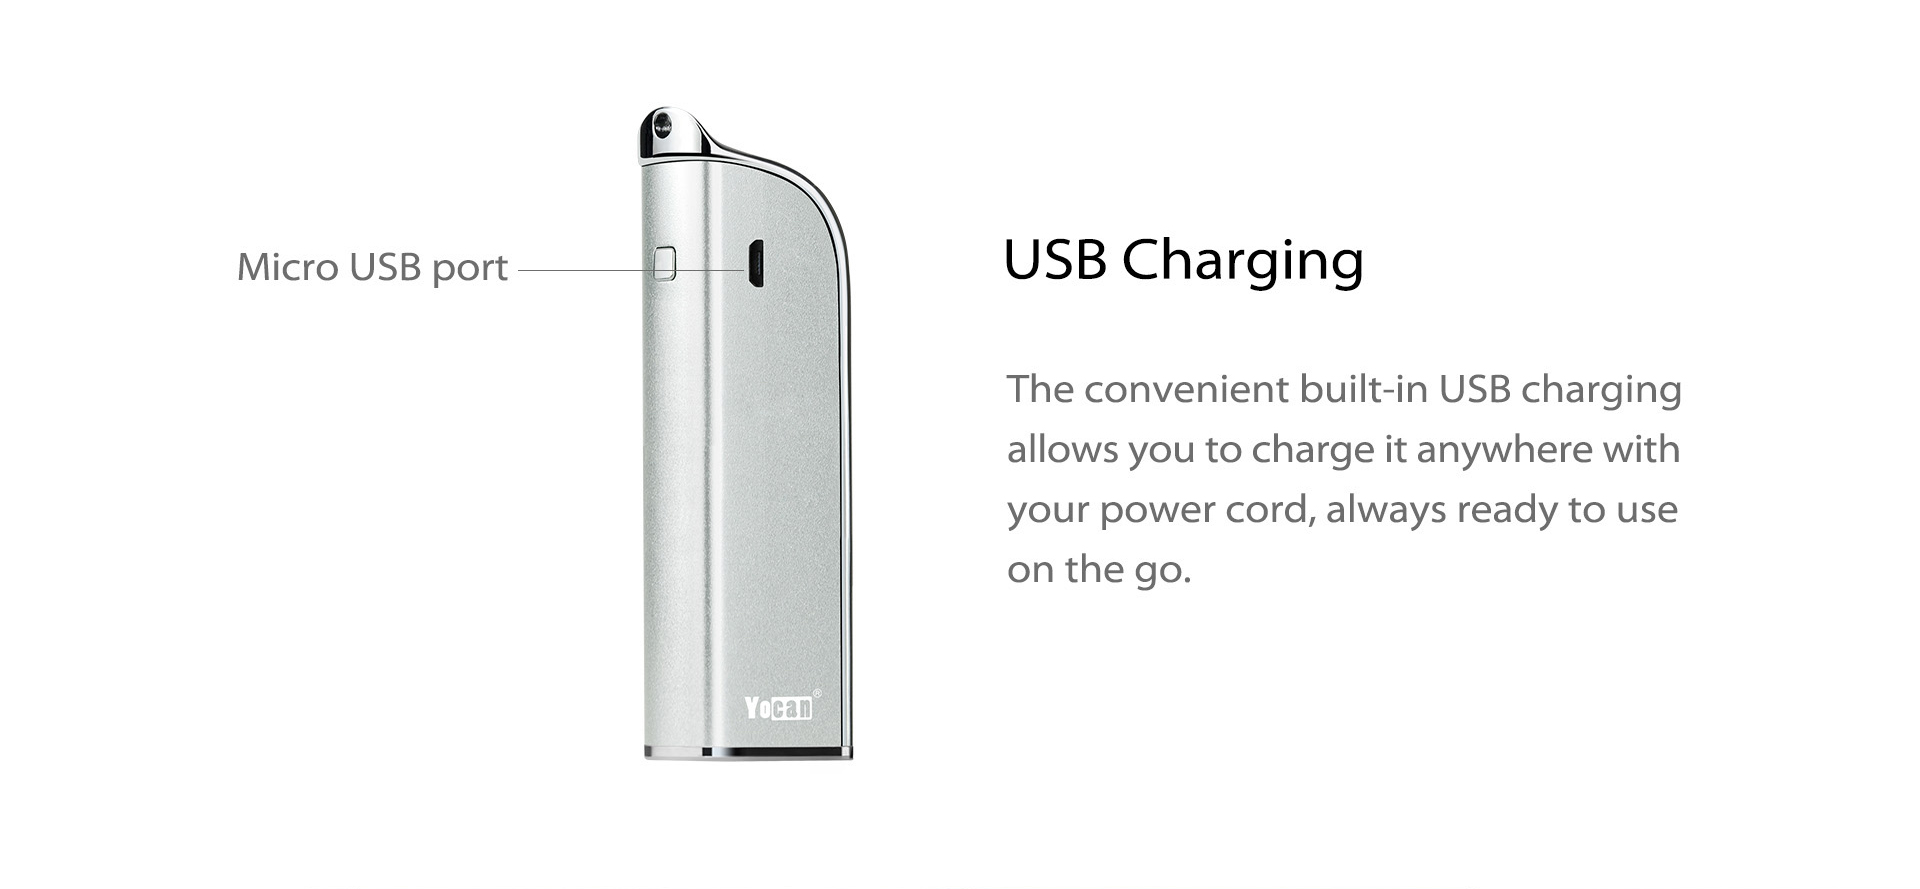 Yocan Stealth features the convenient built-in USB charging.